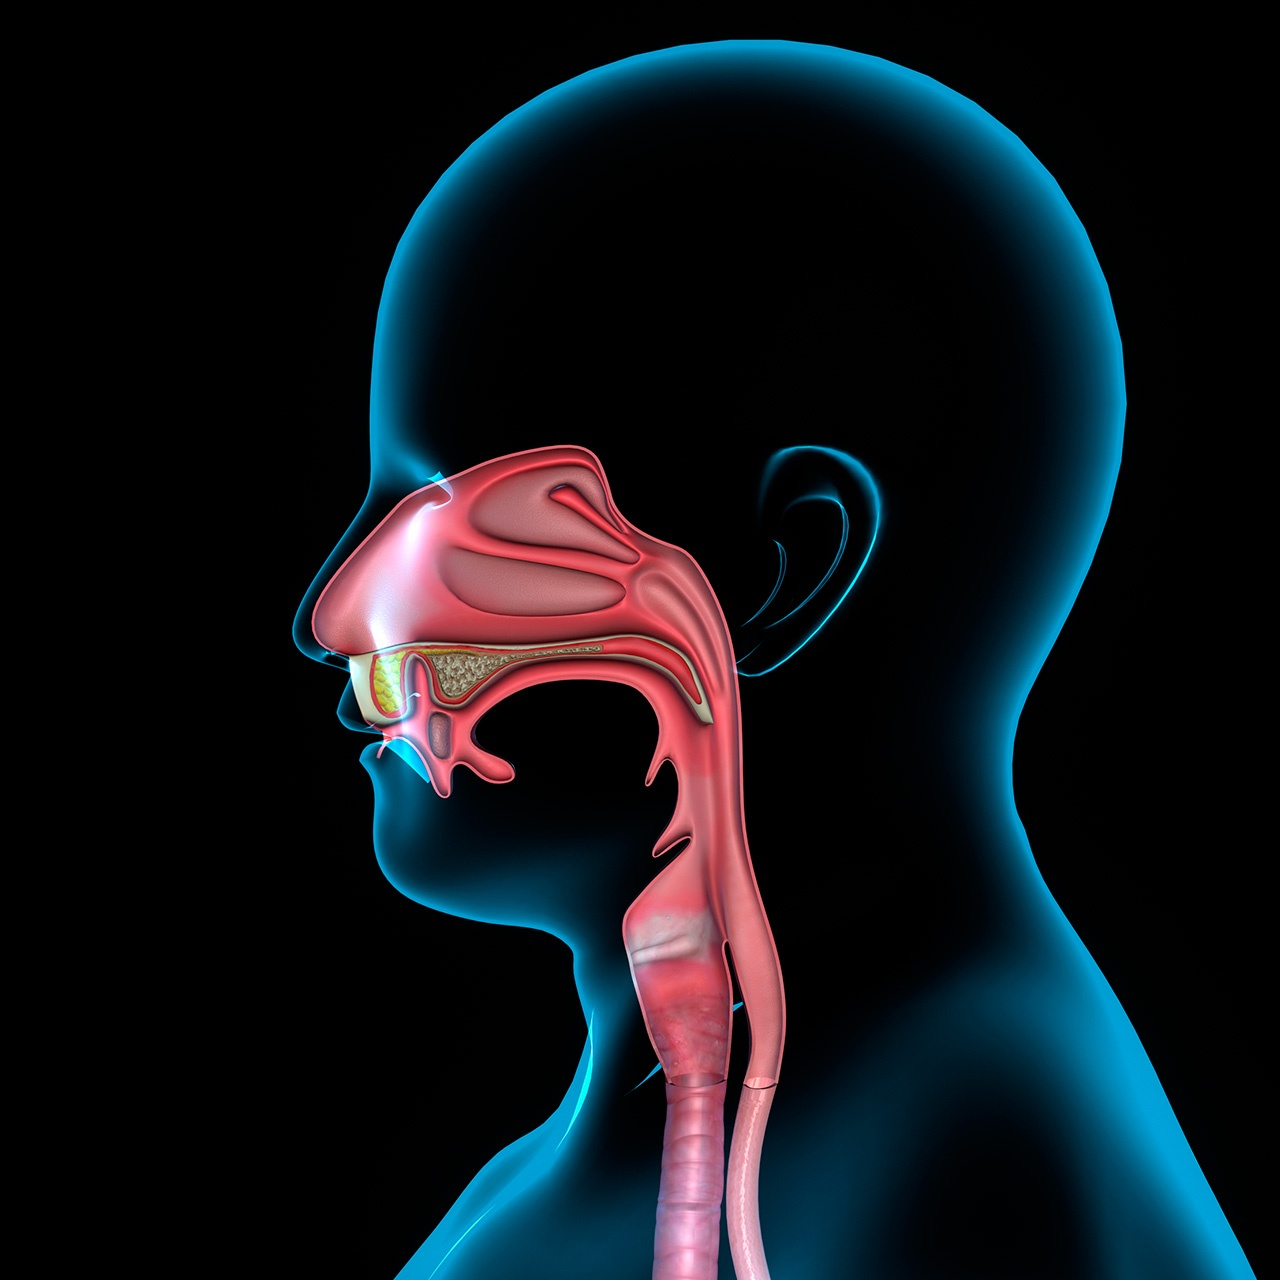 cancer-nasal-interno.jpg